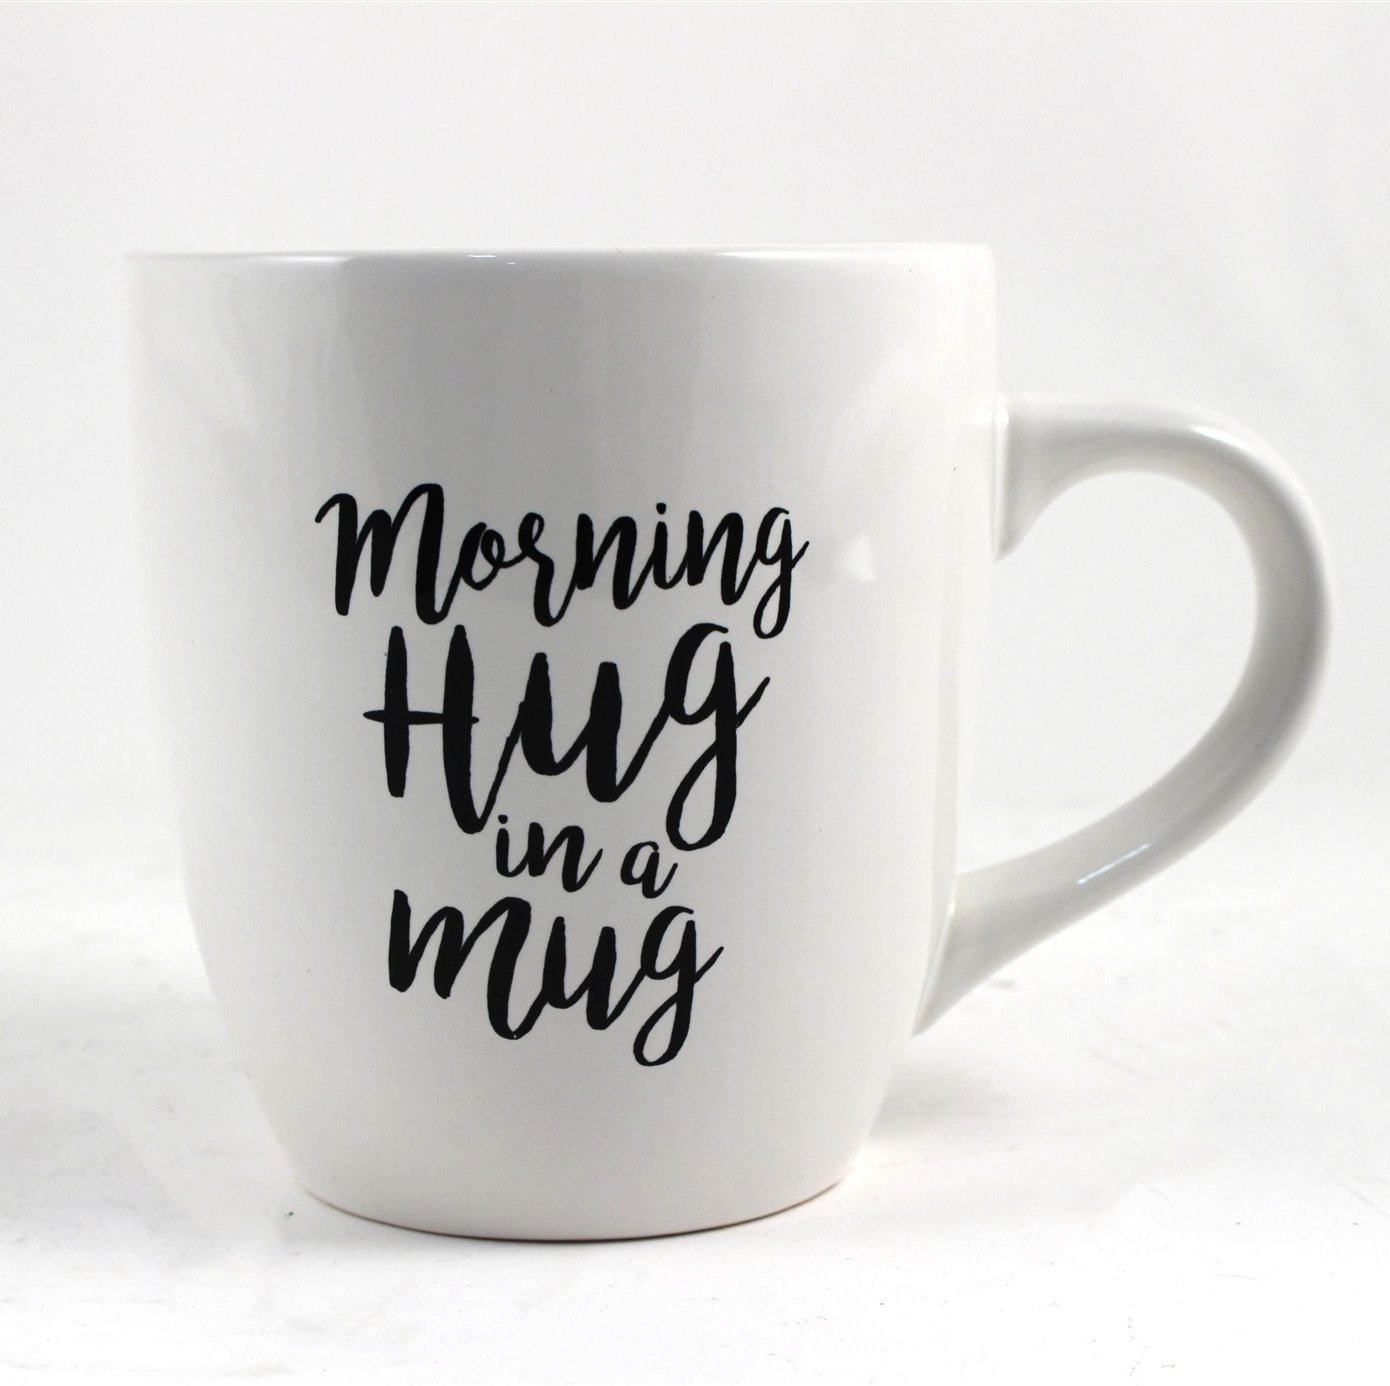 Morning Hug in a Mug | Oversize Mug